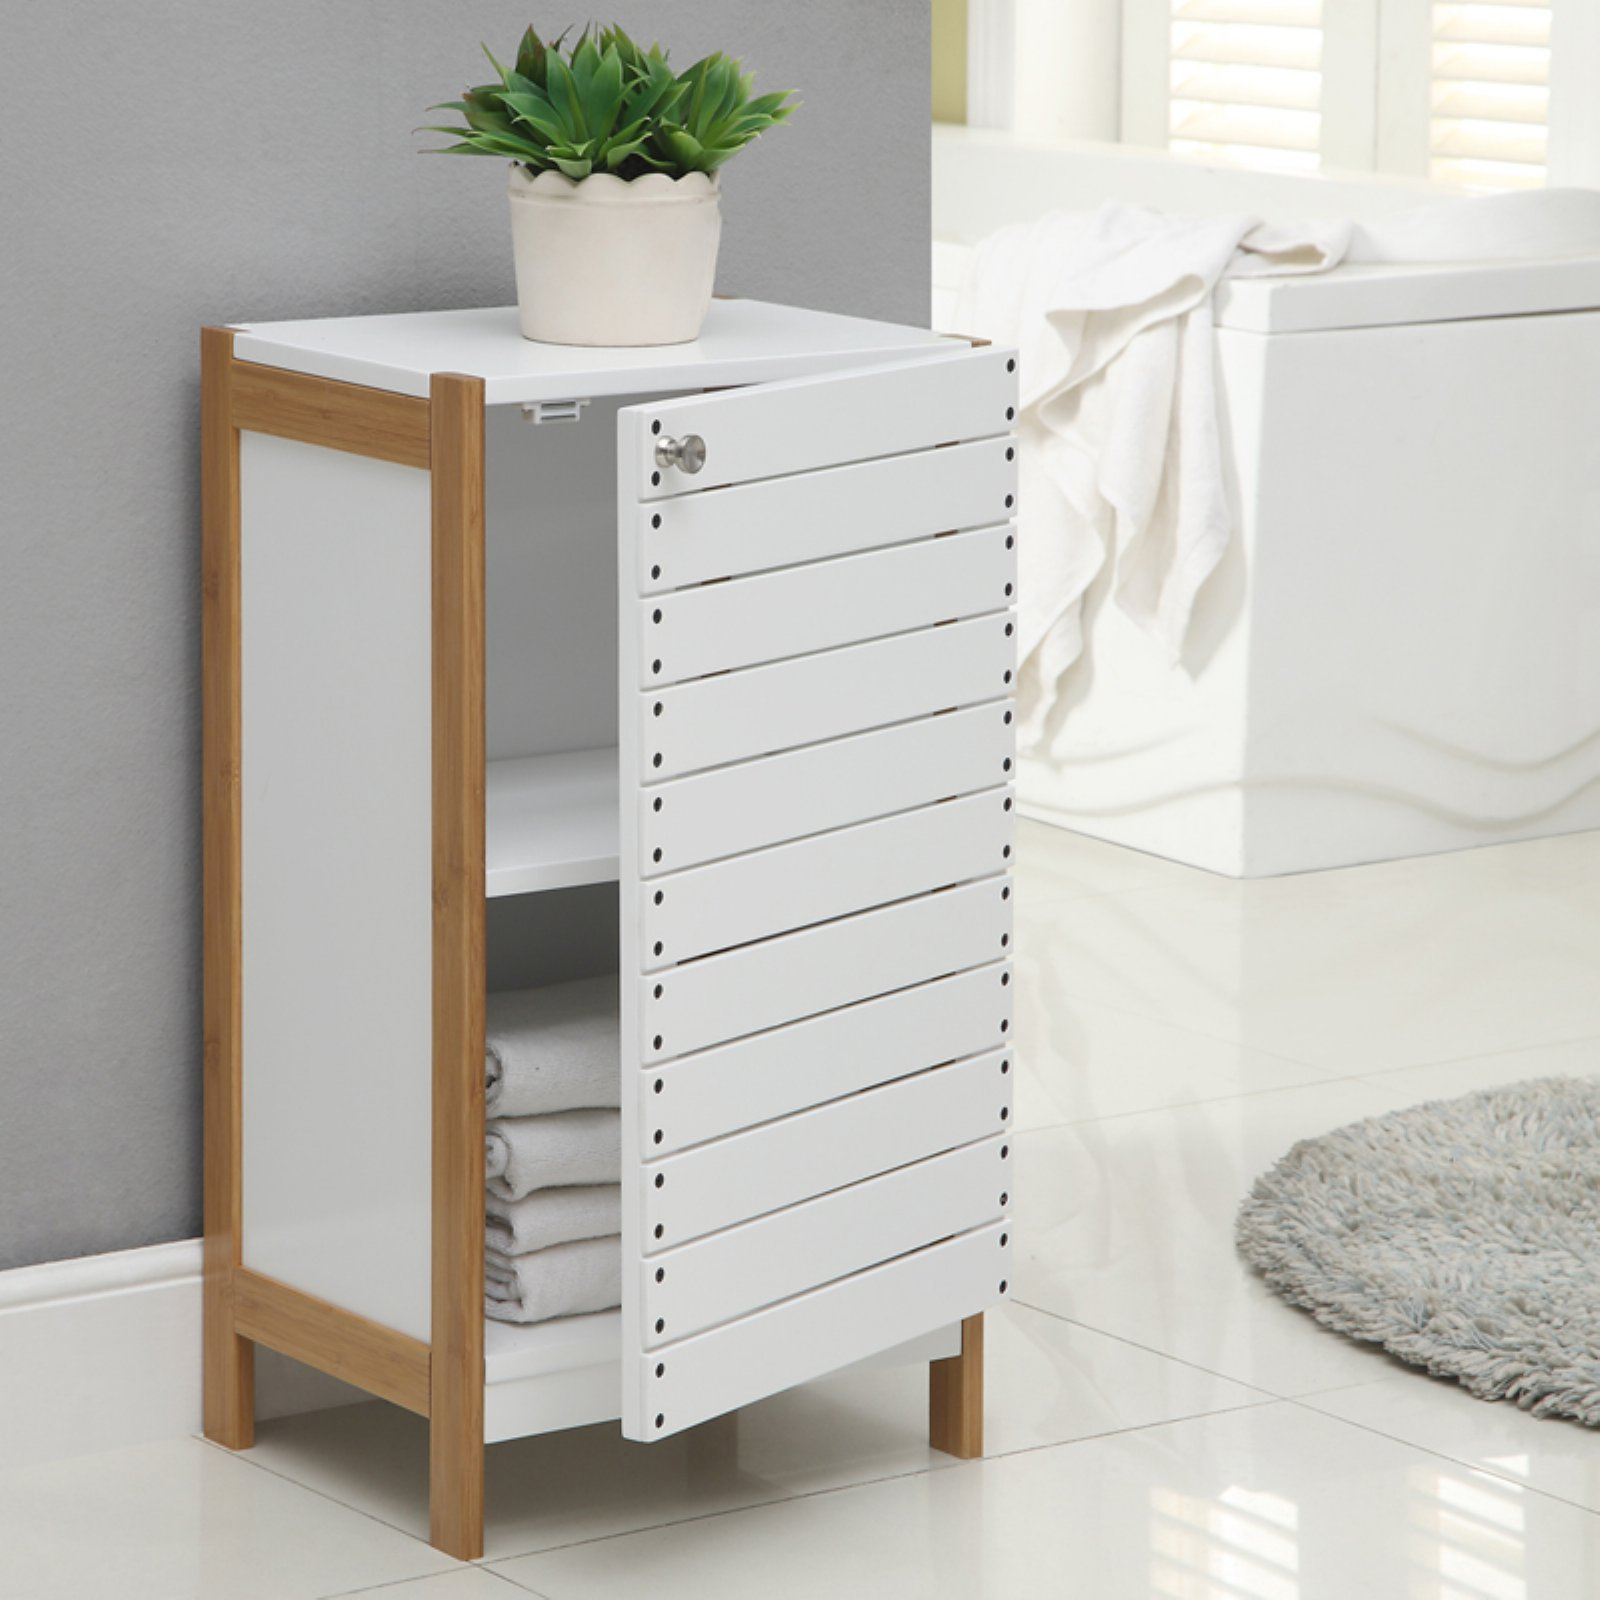 Neu Home Rendition Bath Floor Cabinet